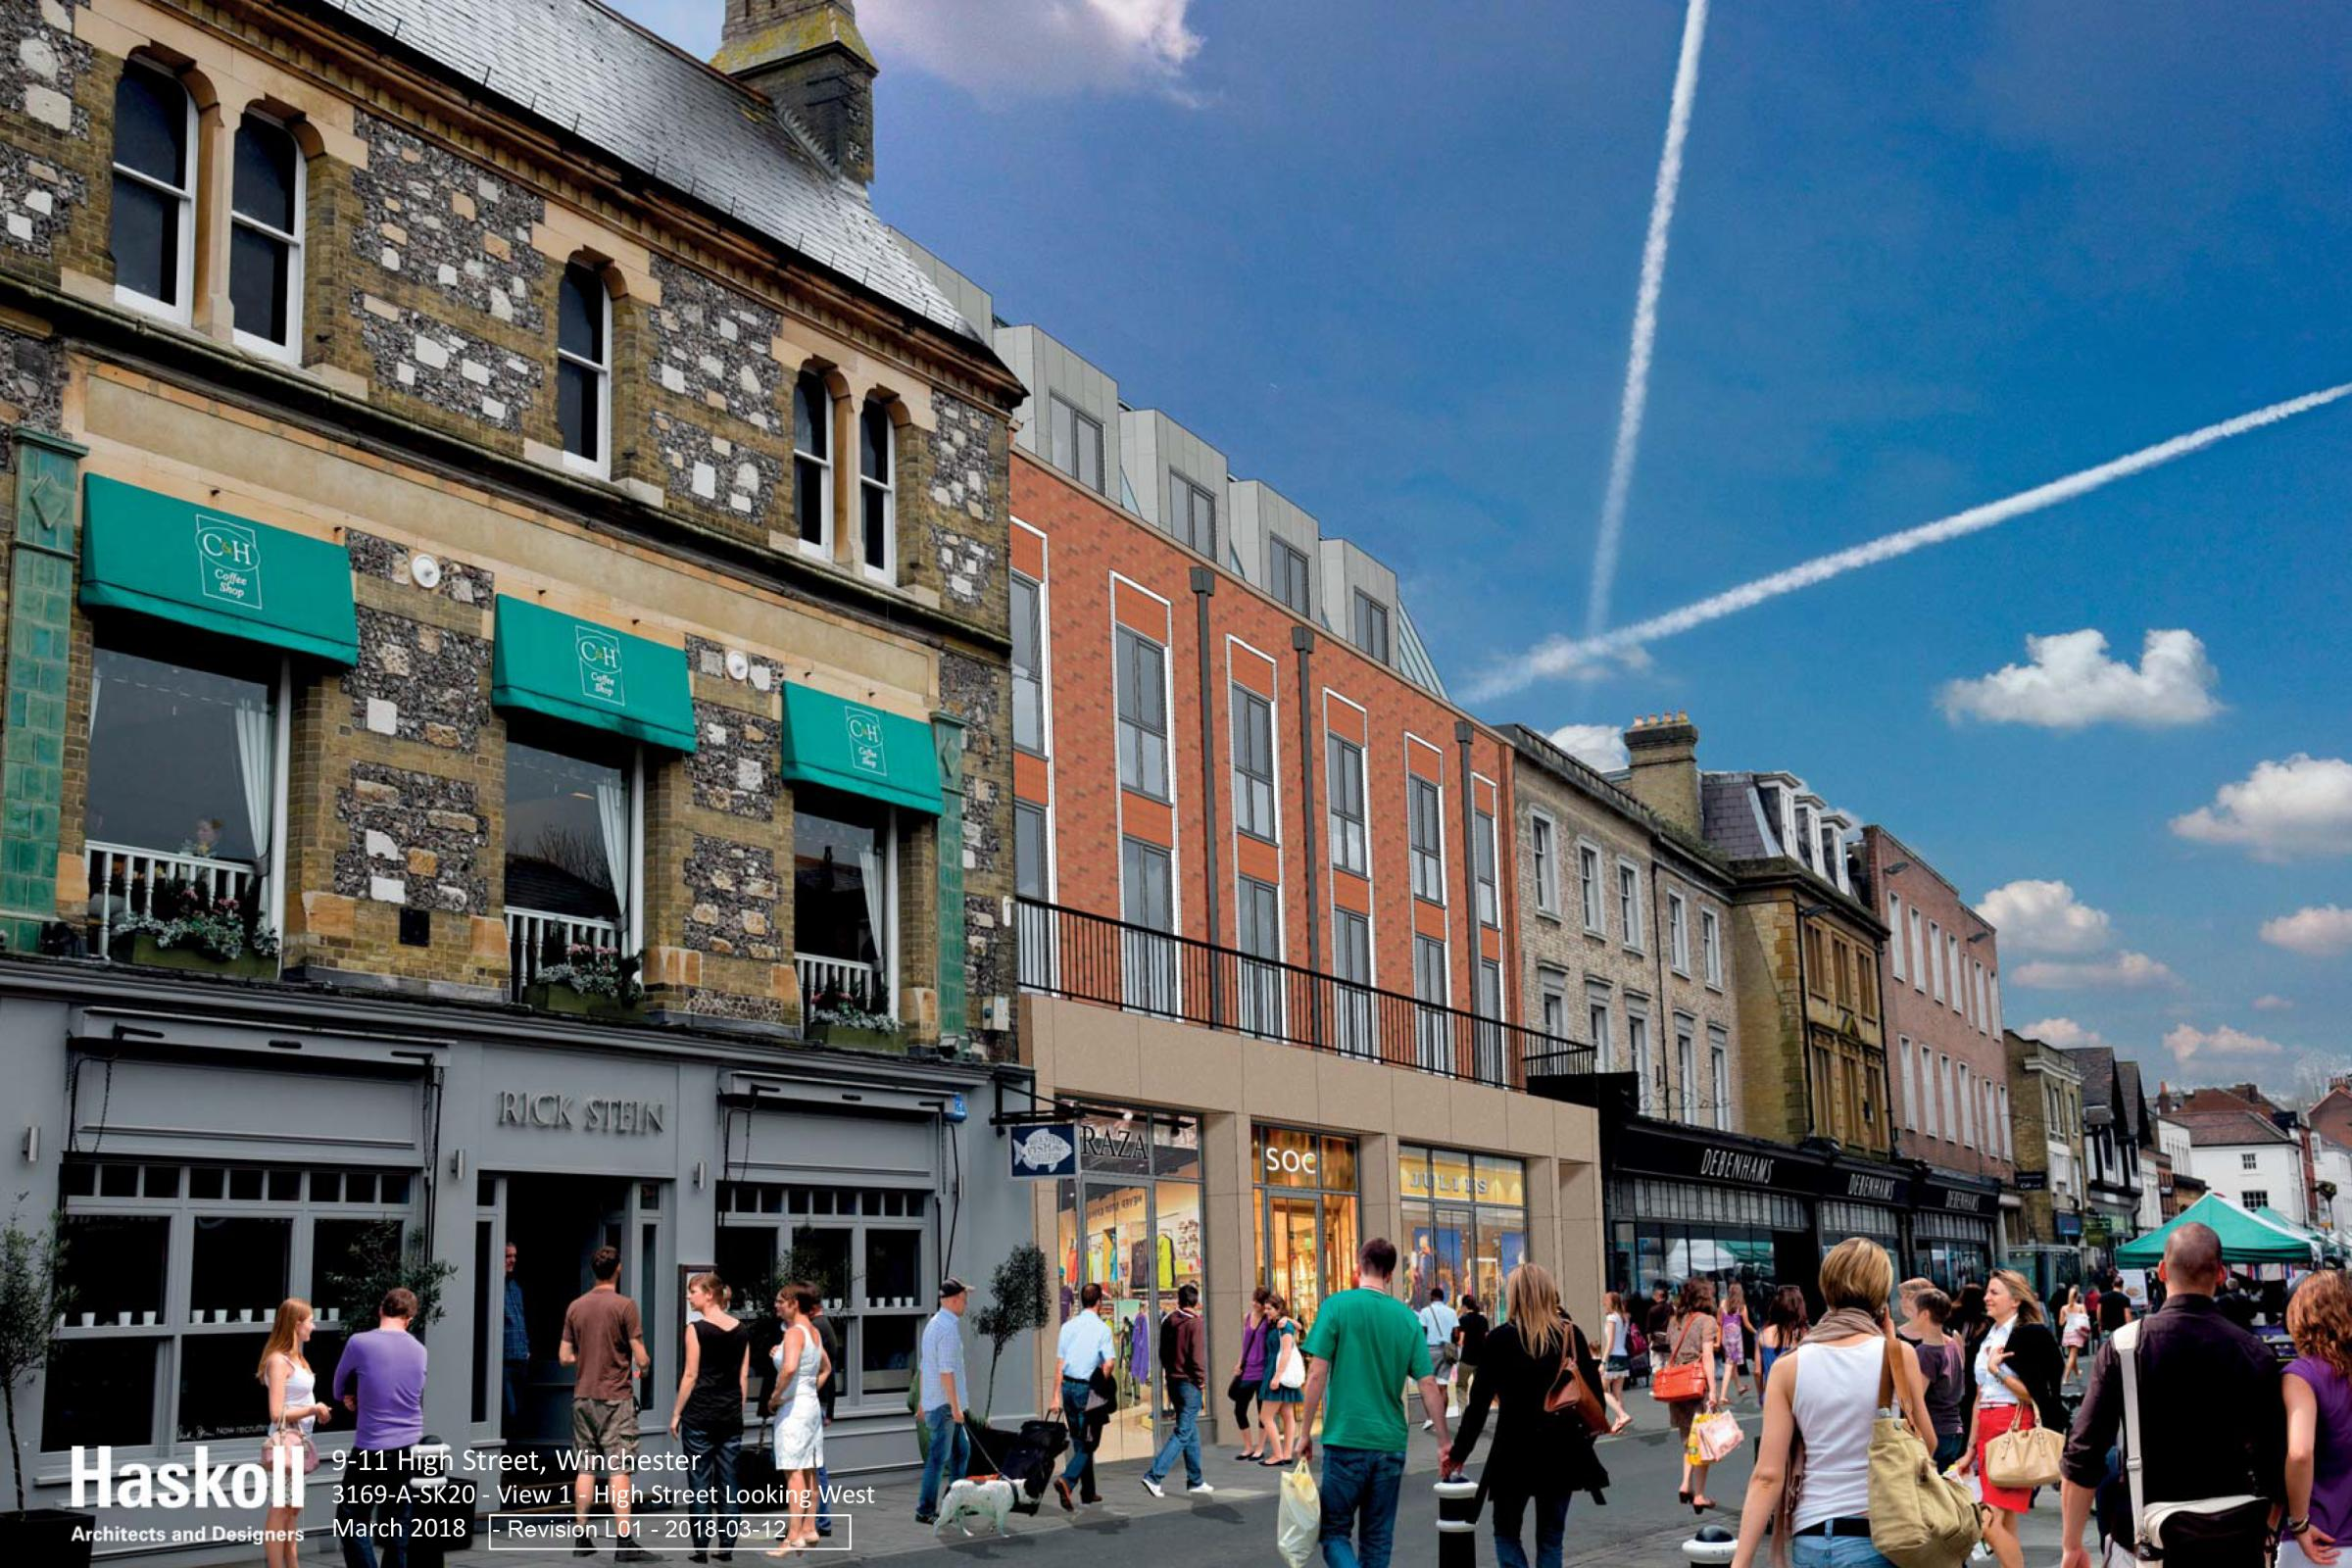 An artist's impression of hotel under the amended proposals from High Street, Winchester